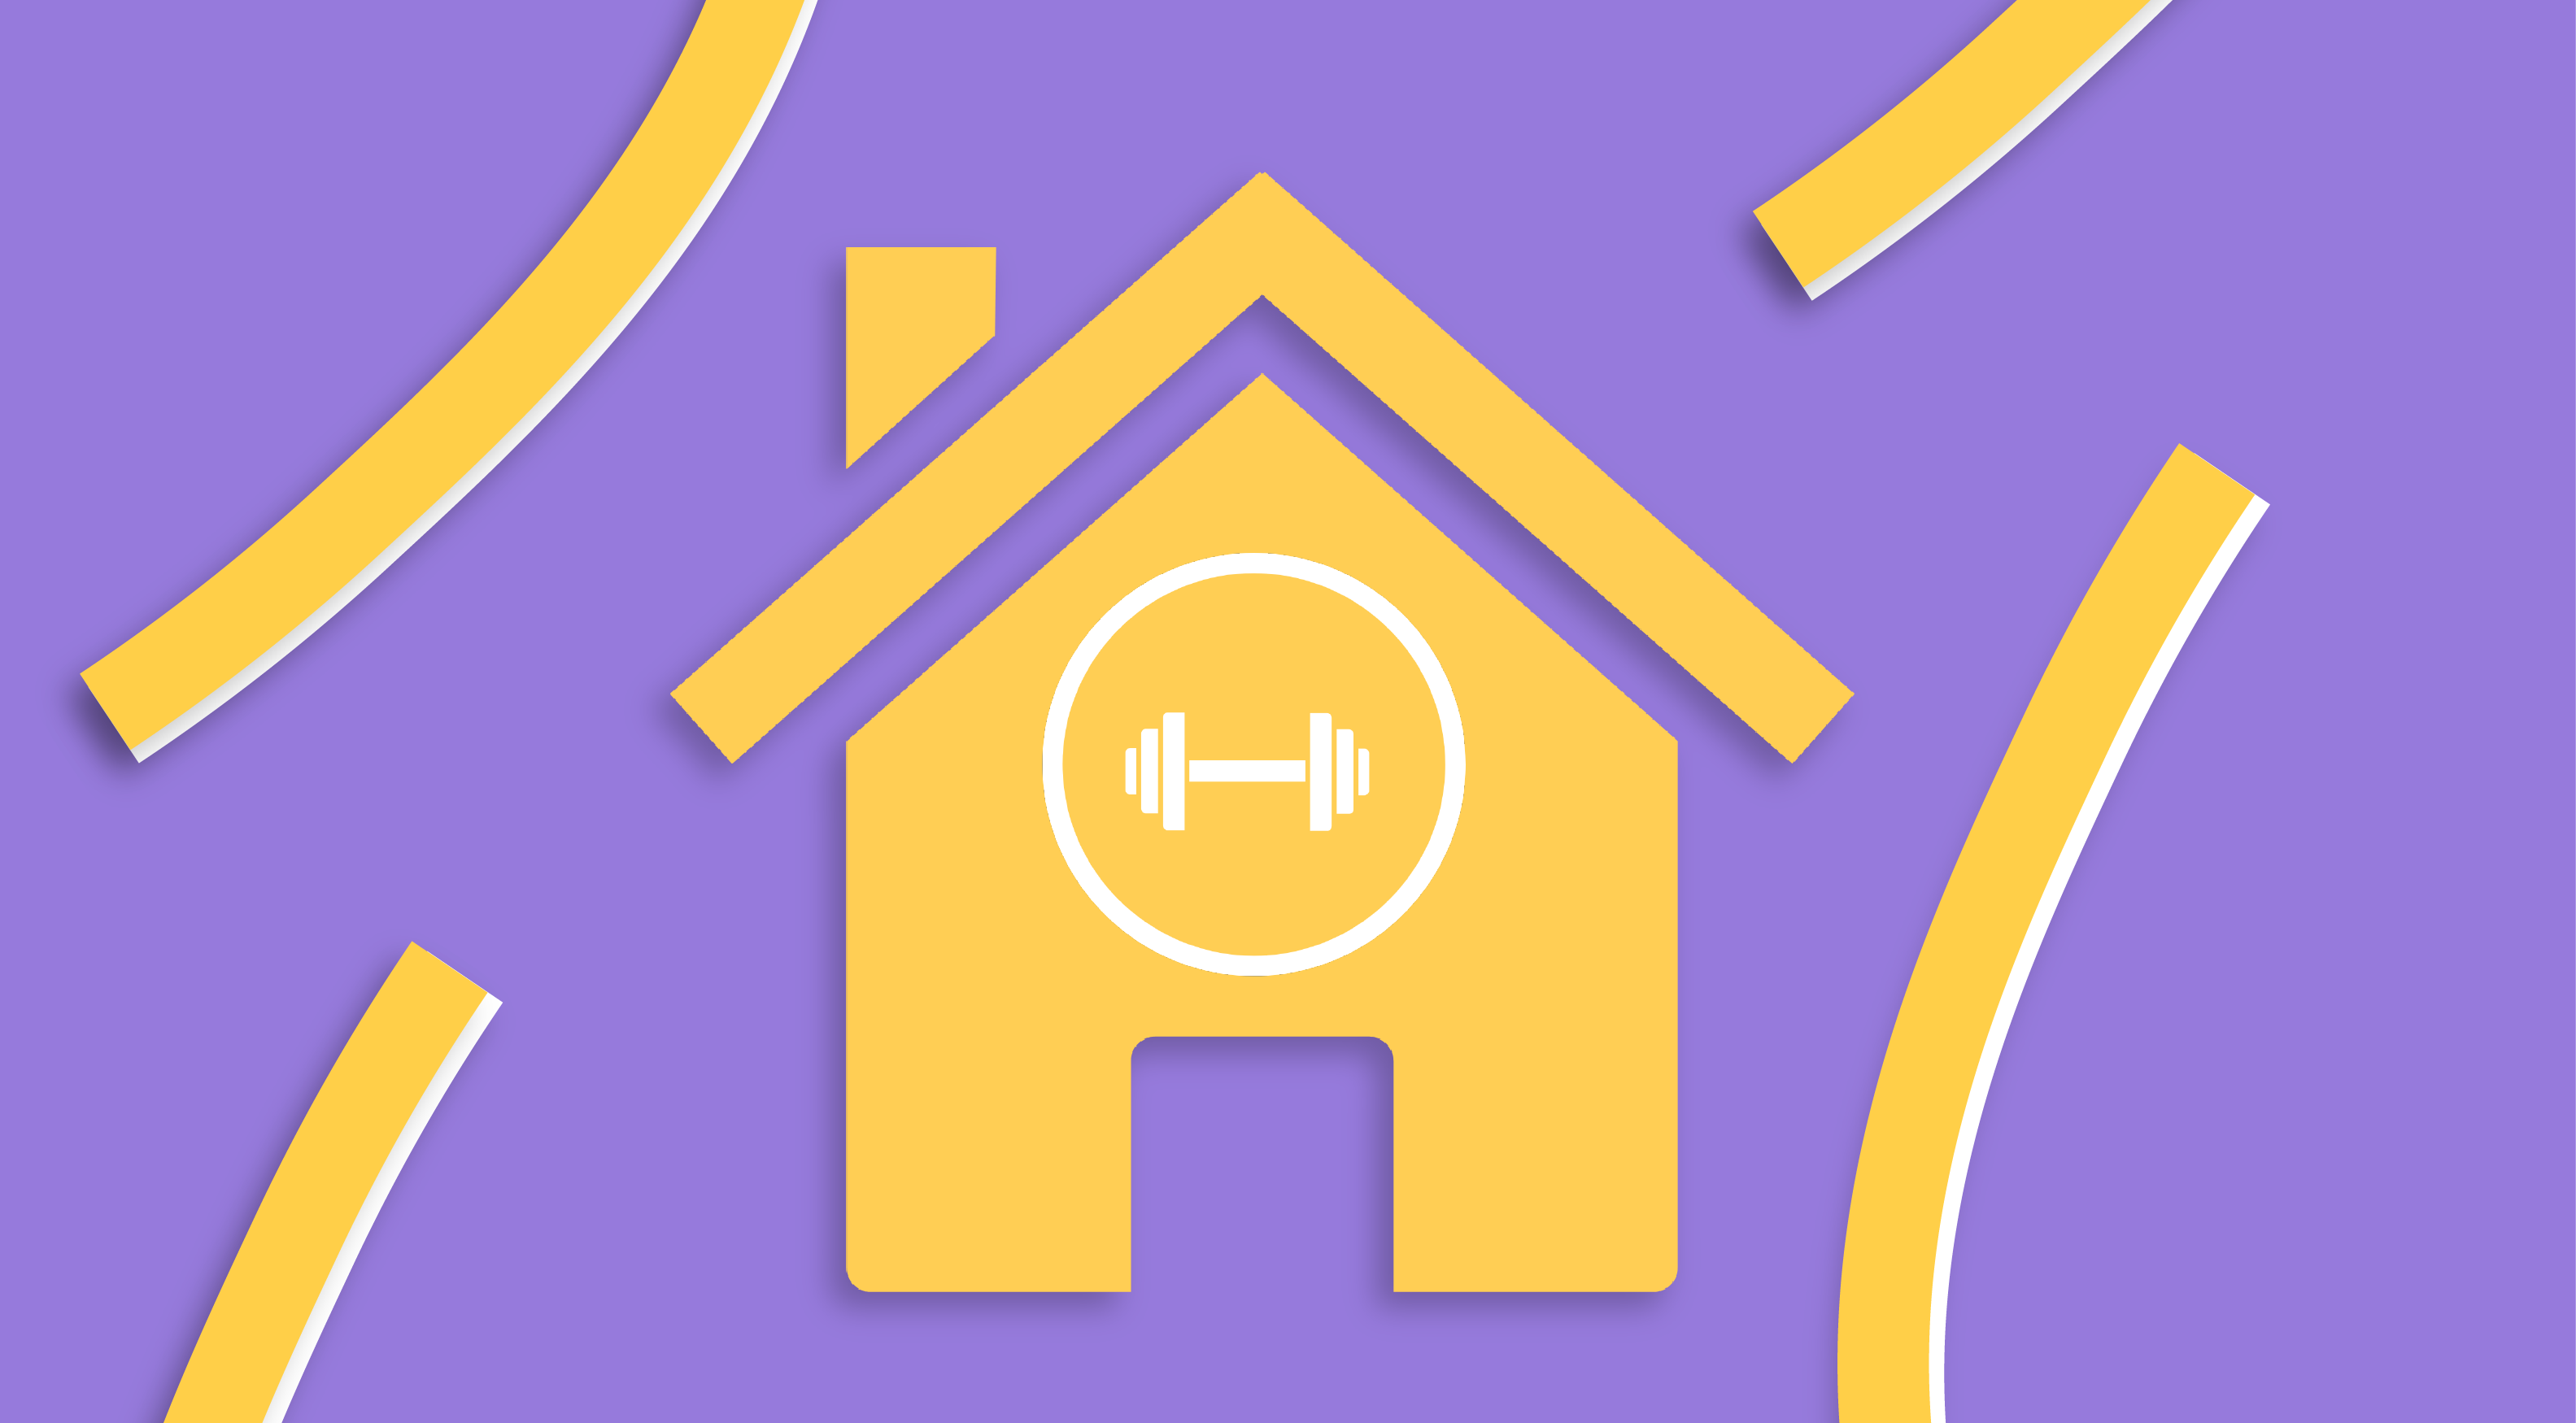 Exercise at home wellbeing